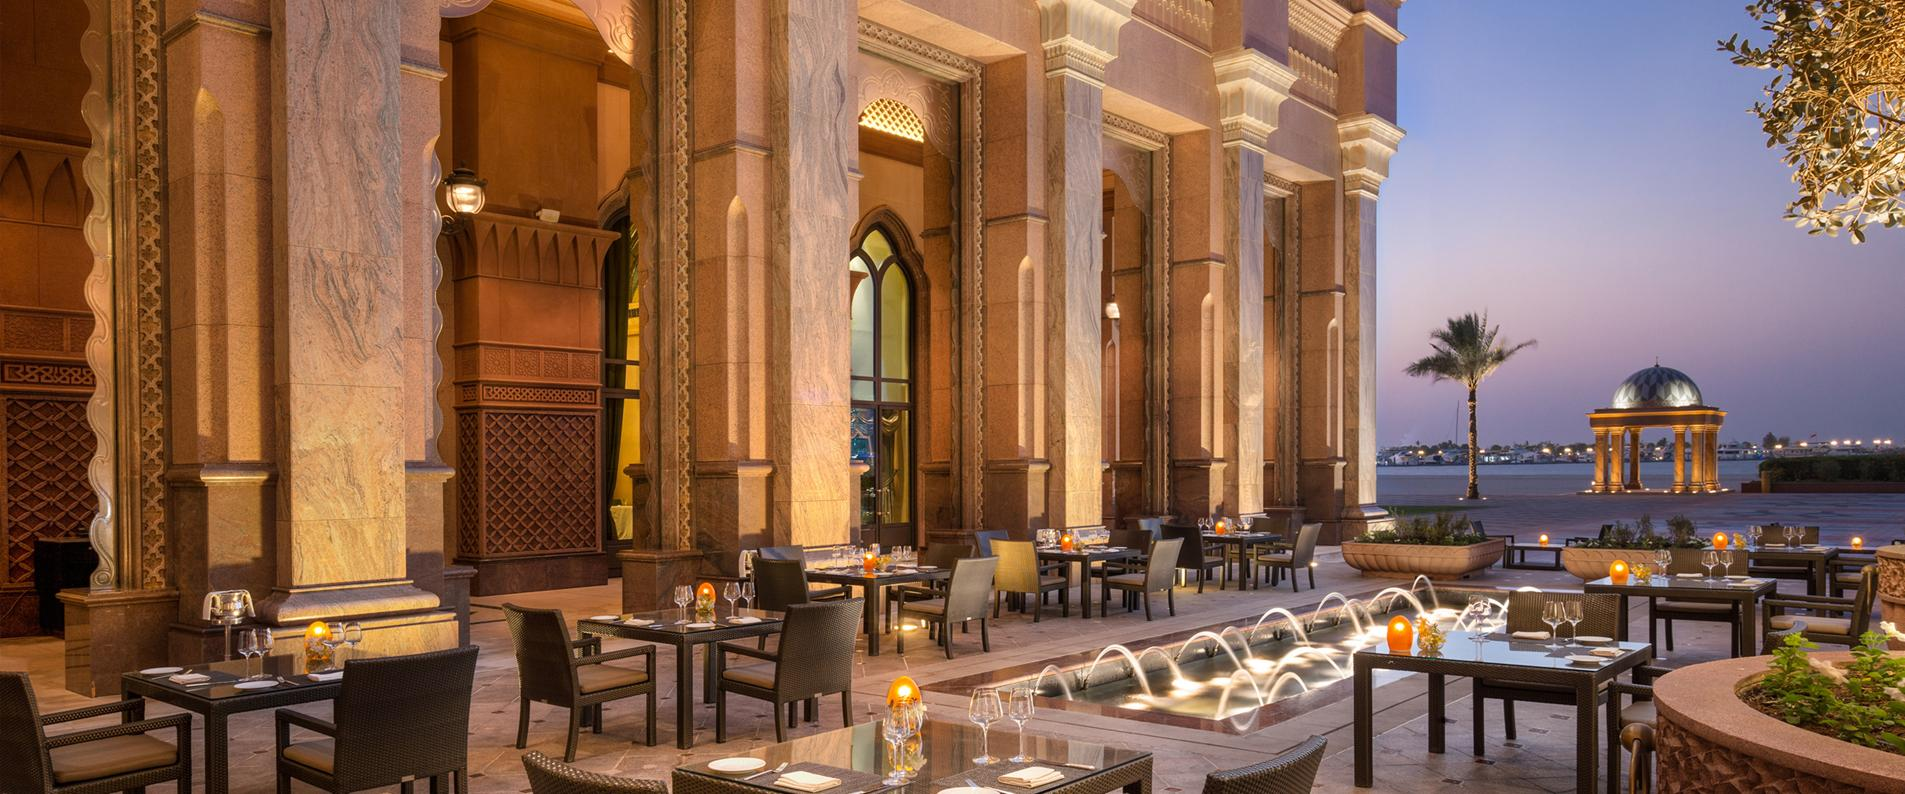 Abu Dhabi has become the home of some of the world's top restaurants